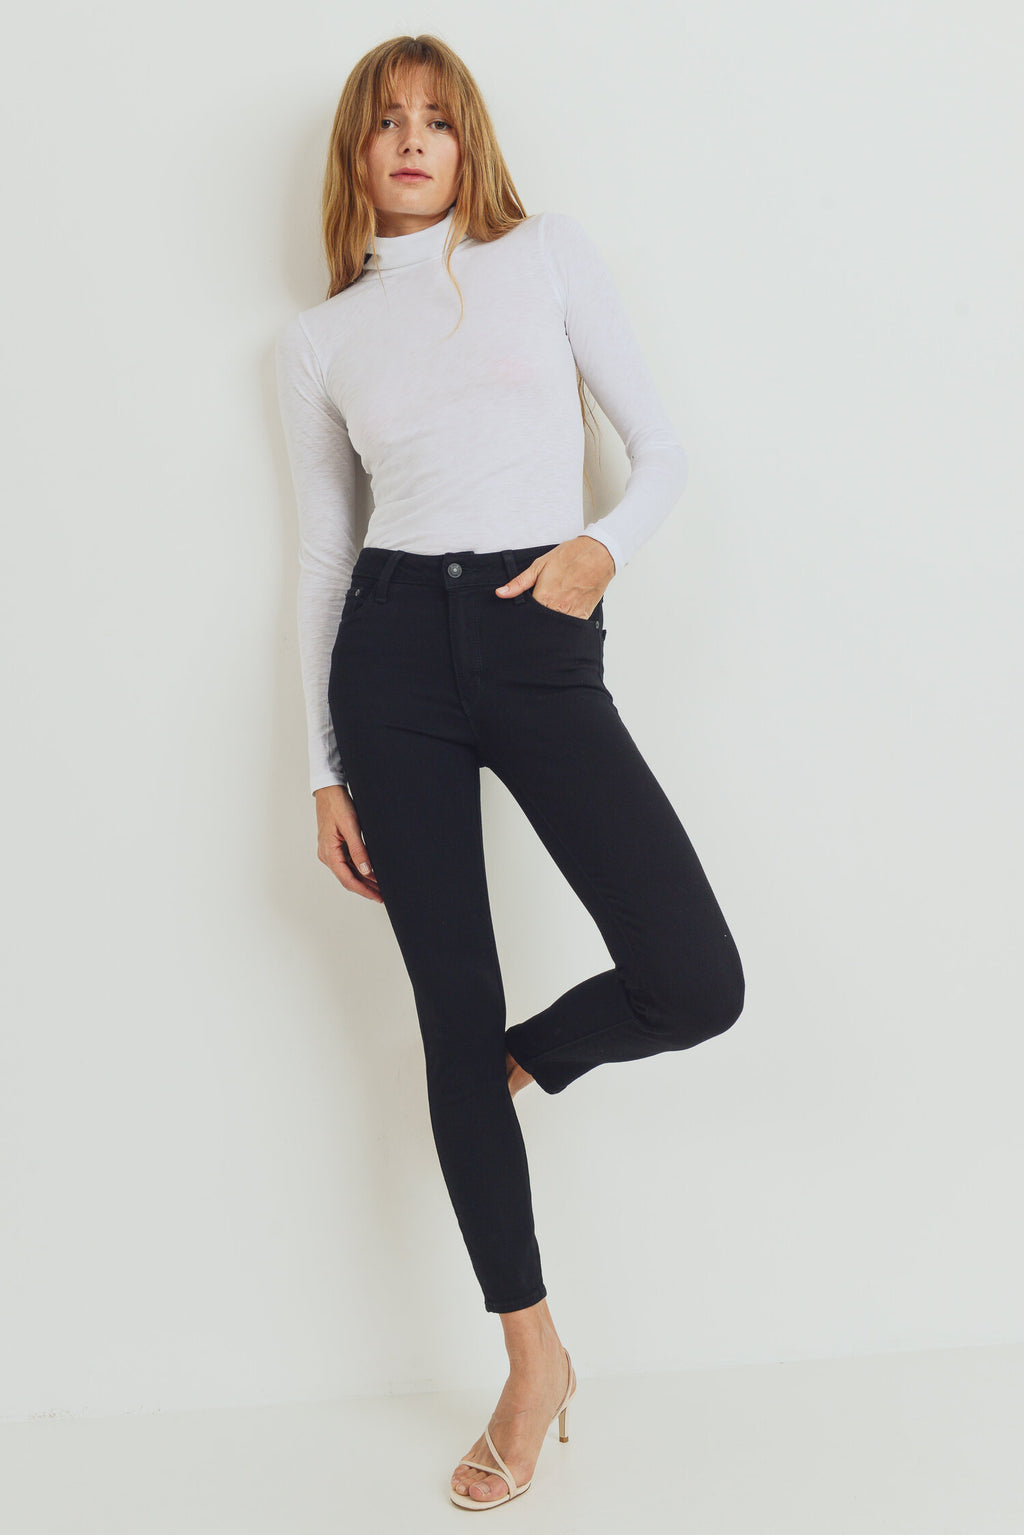 The Basic Skinny Black Denim